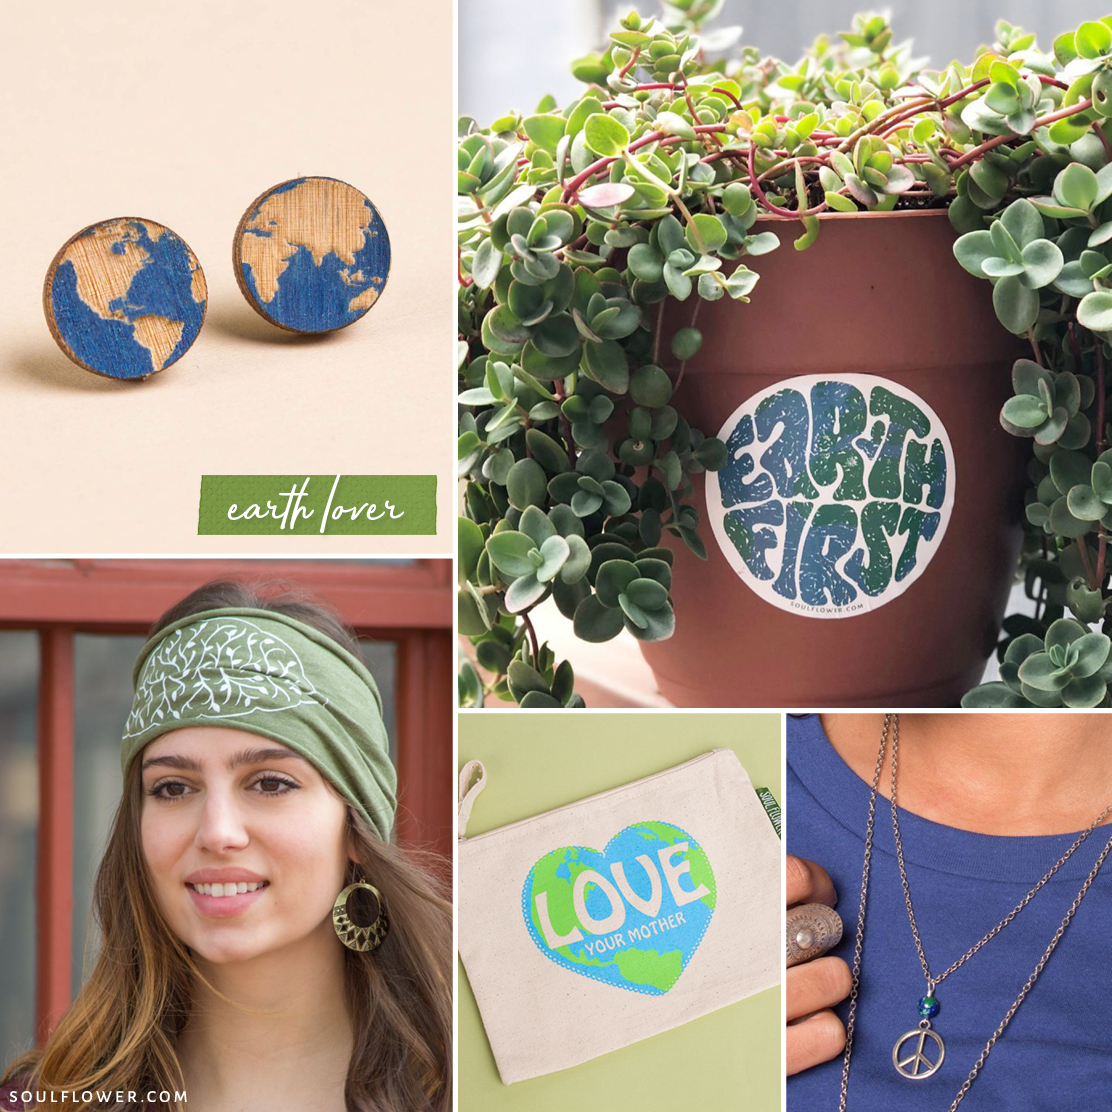 vegan gifts earth lovers - Vegan Gift Ideas - Vegan Holiday Gifts